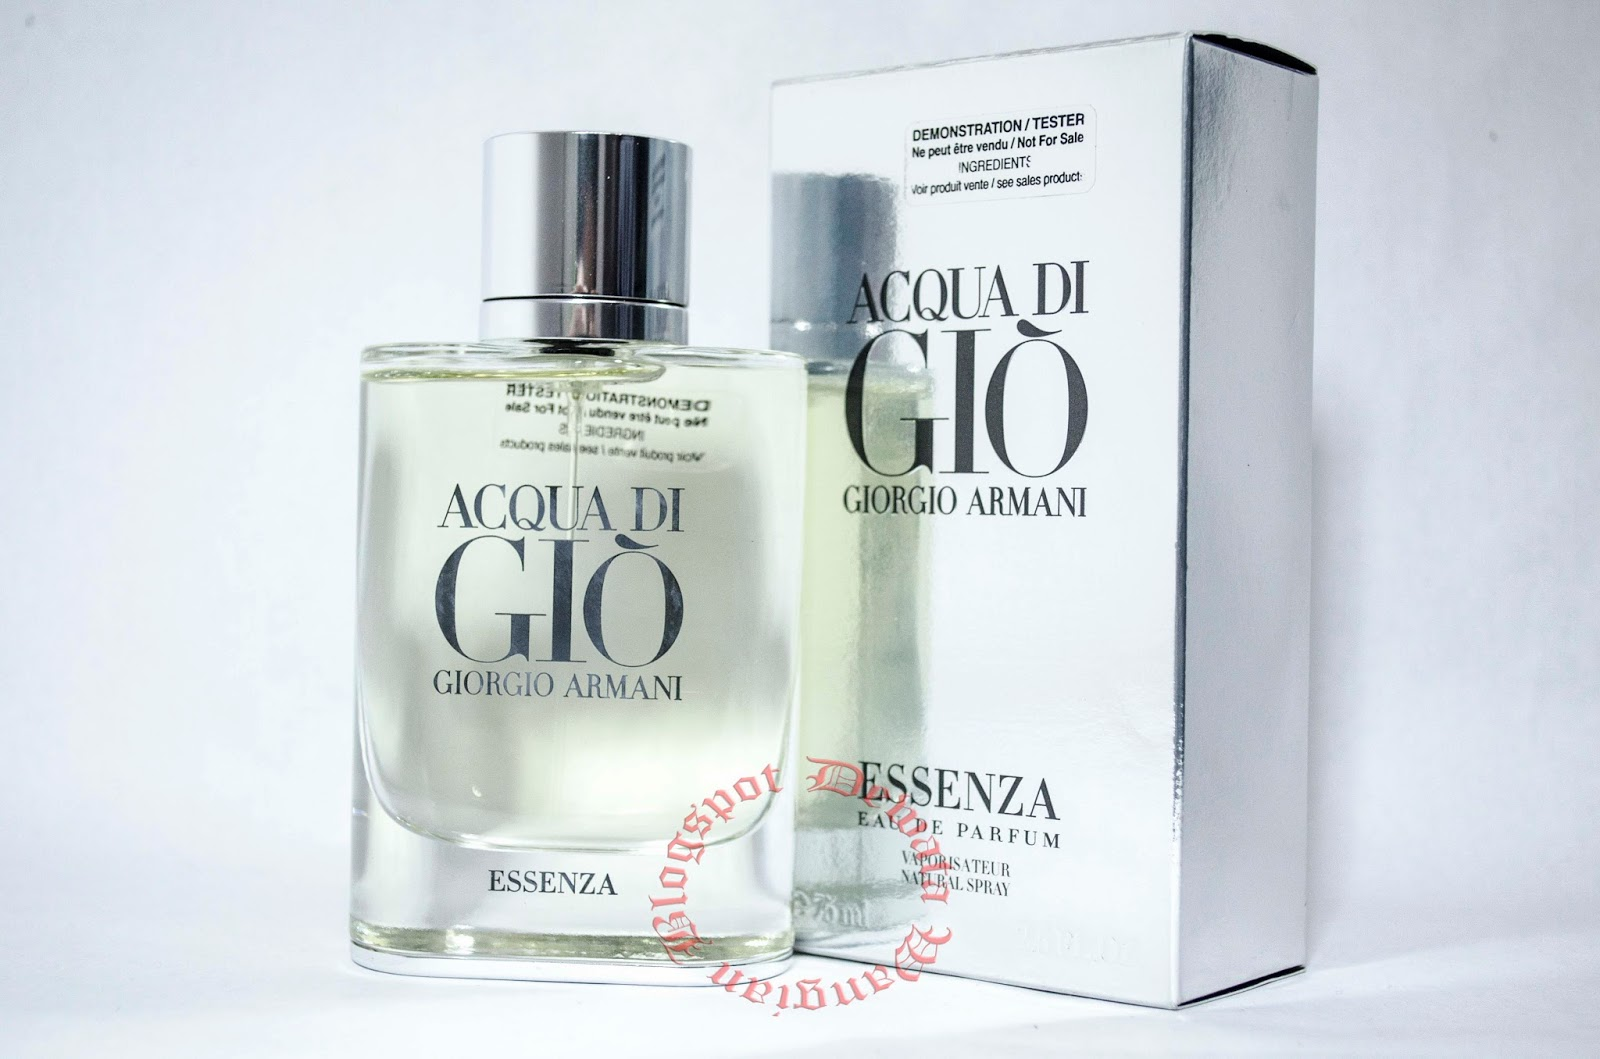 bd00ac2040 Men s fragrance Acqua Di Giò was launched in 1996 and achieved great  success since then. Armani announced the release of the new version - Acqua  Di Giò ...